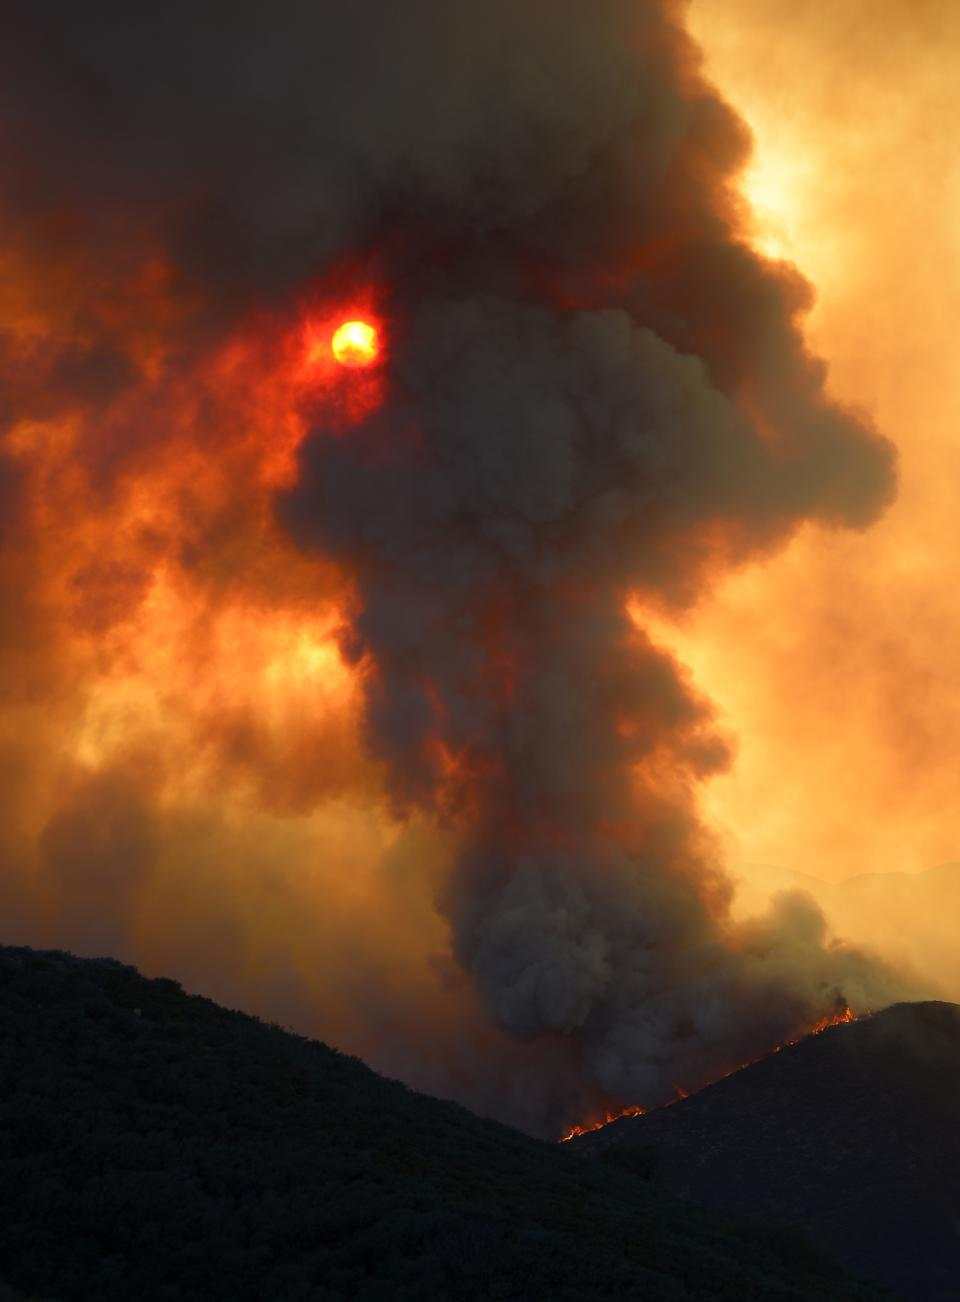 Smoke billows from a fire burring in Point Mugu State Park during a wildfire that burned several thousand acres, Thursday, May 2, 2013, in Ventura County, Calif.   (AP Photo/Mark J. Terrill)